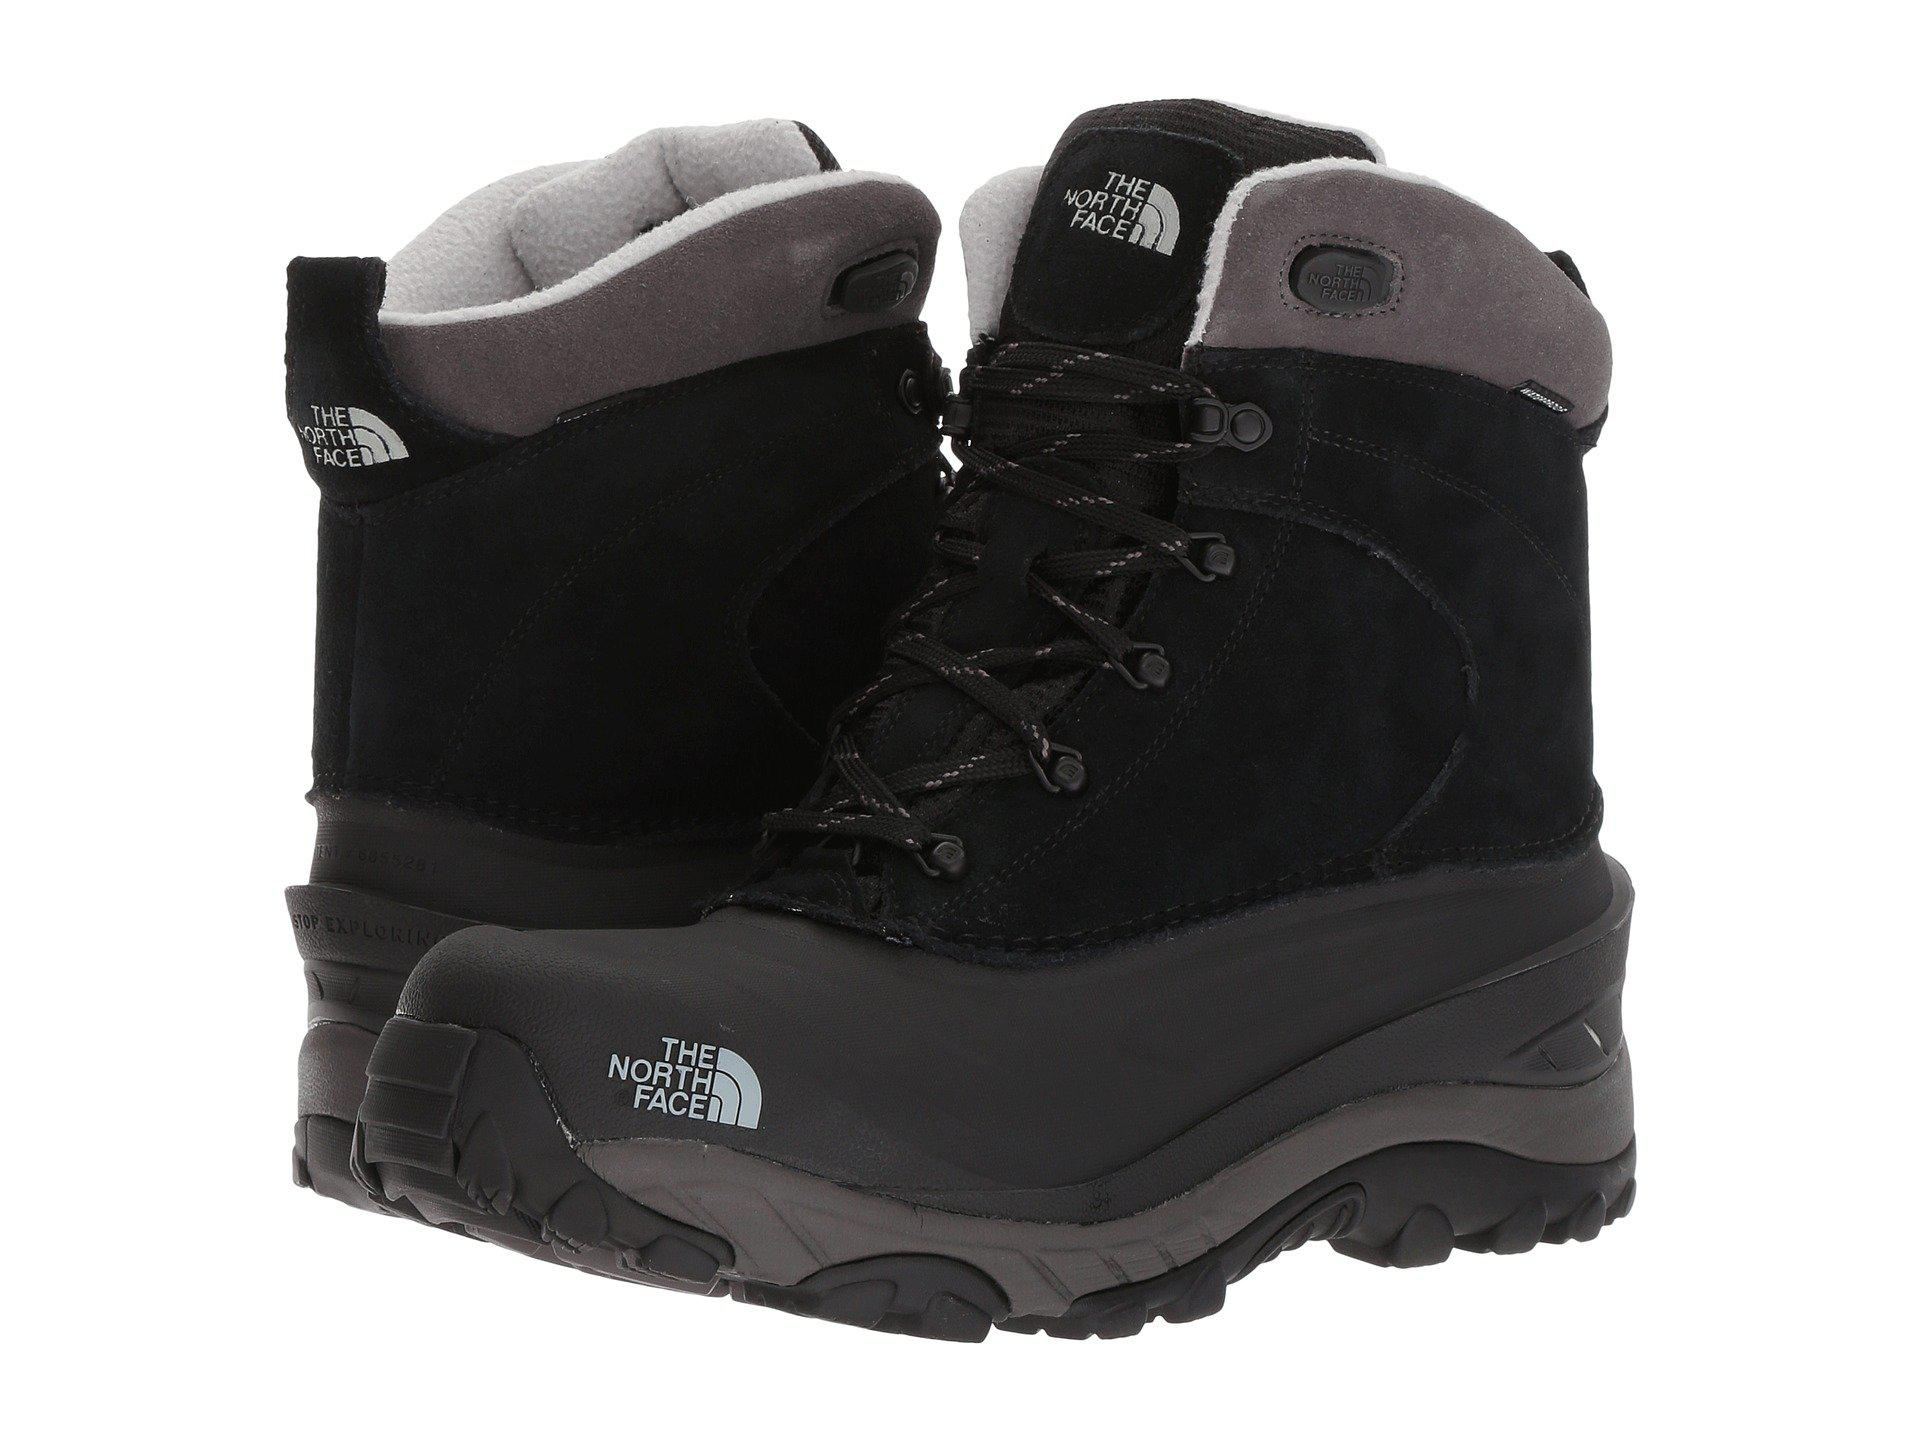 The North Face Leather Chilkat Iii Boots In Black For Men Save 65 Lyst